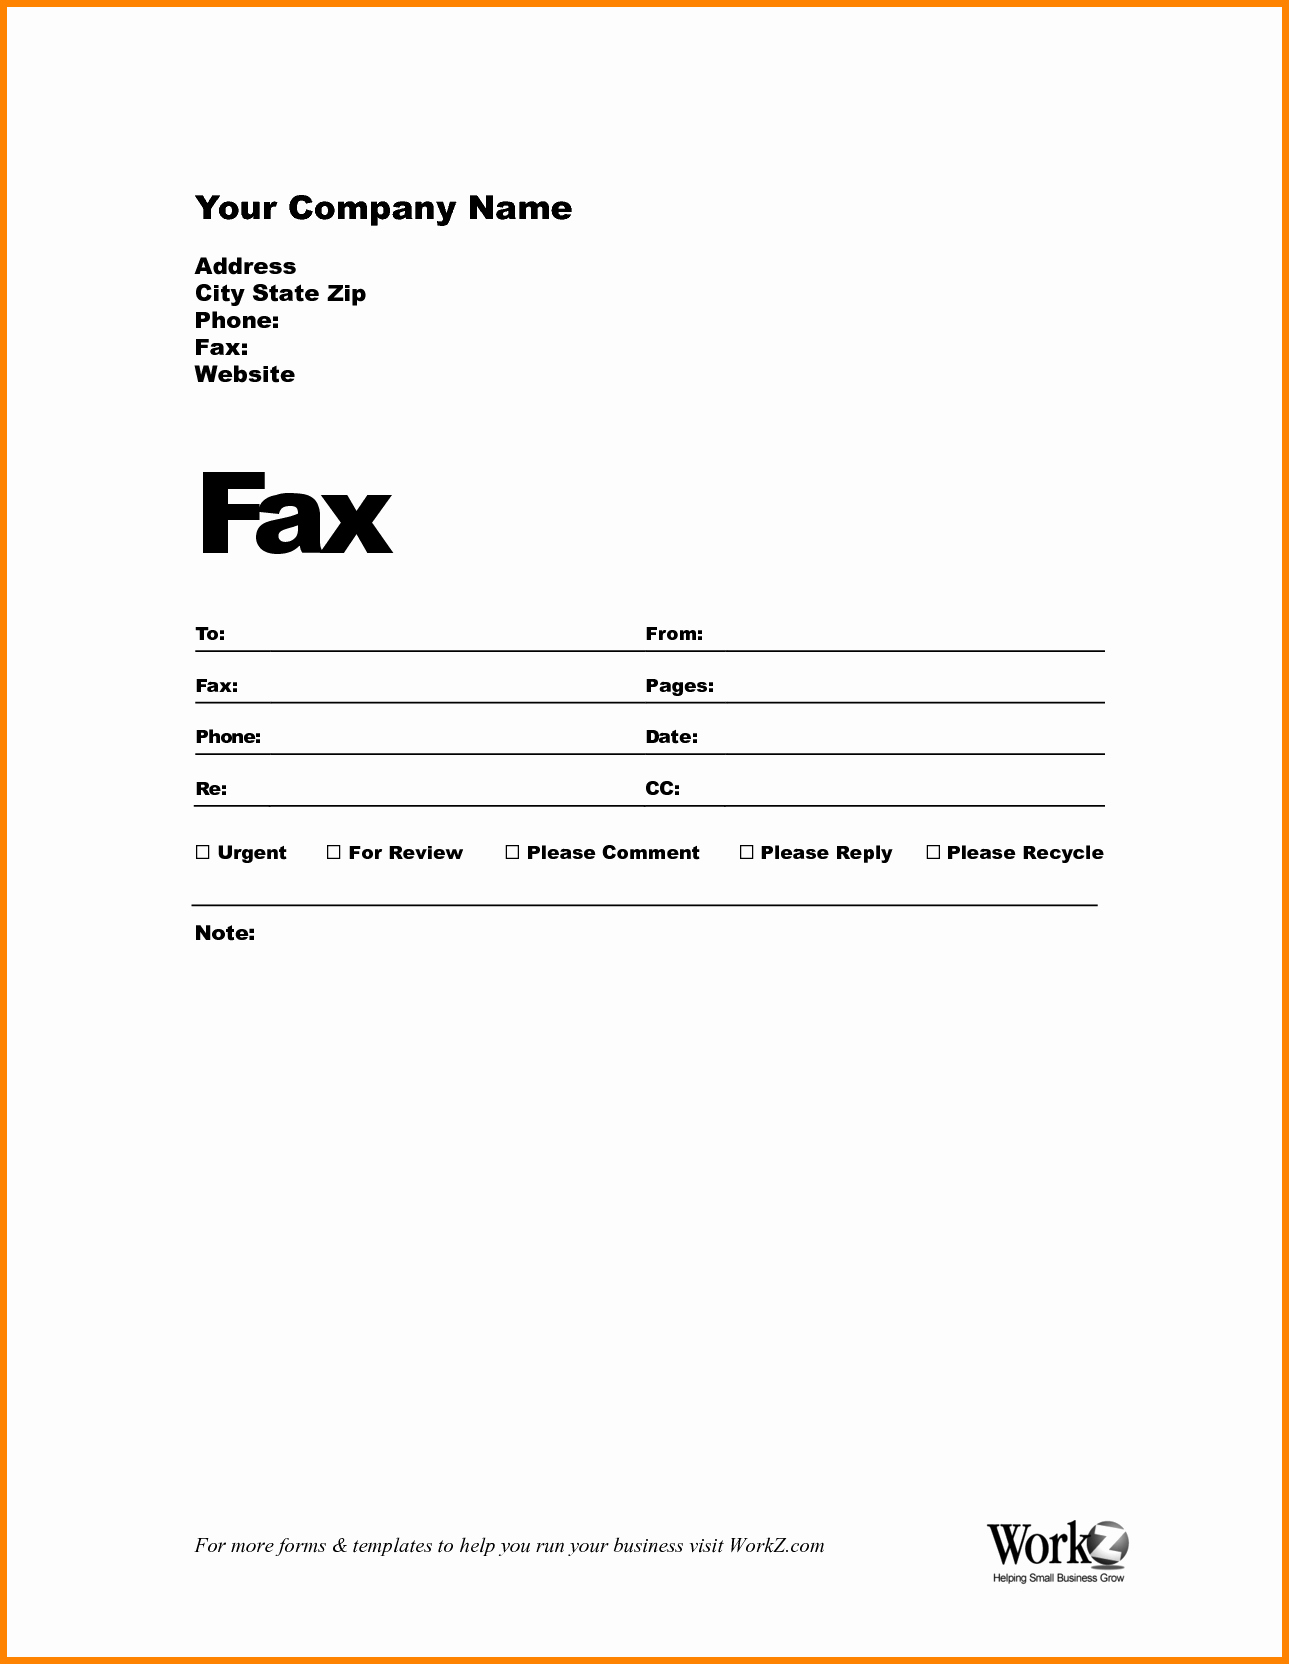 Free Fax Cover Sheet Templates Elegant 7 Blank Fax Cover Sheet Template Word Best Ideas Fax